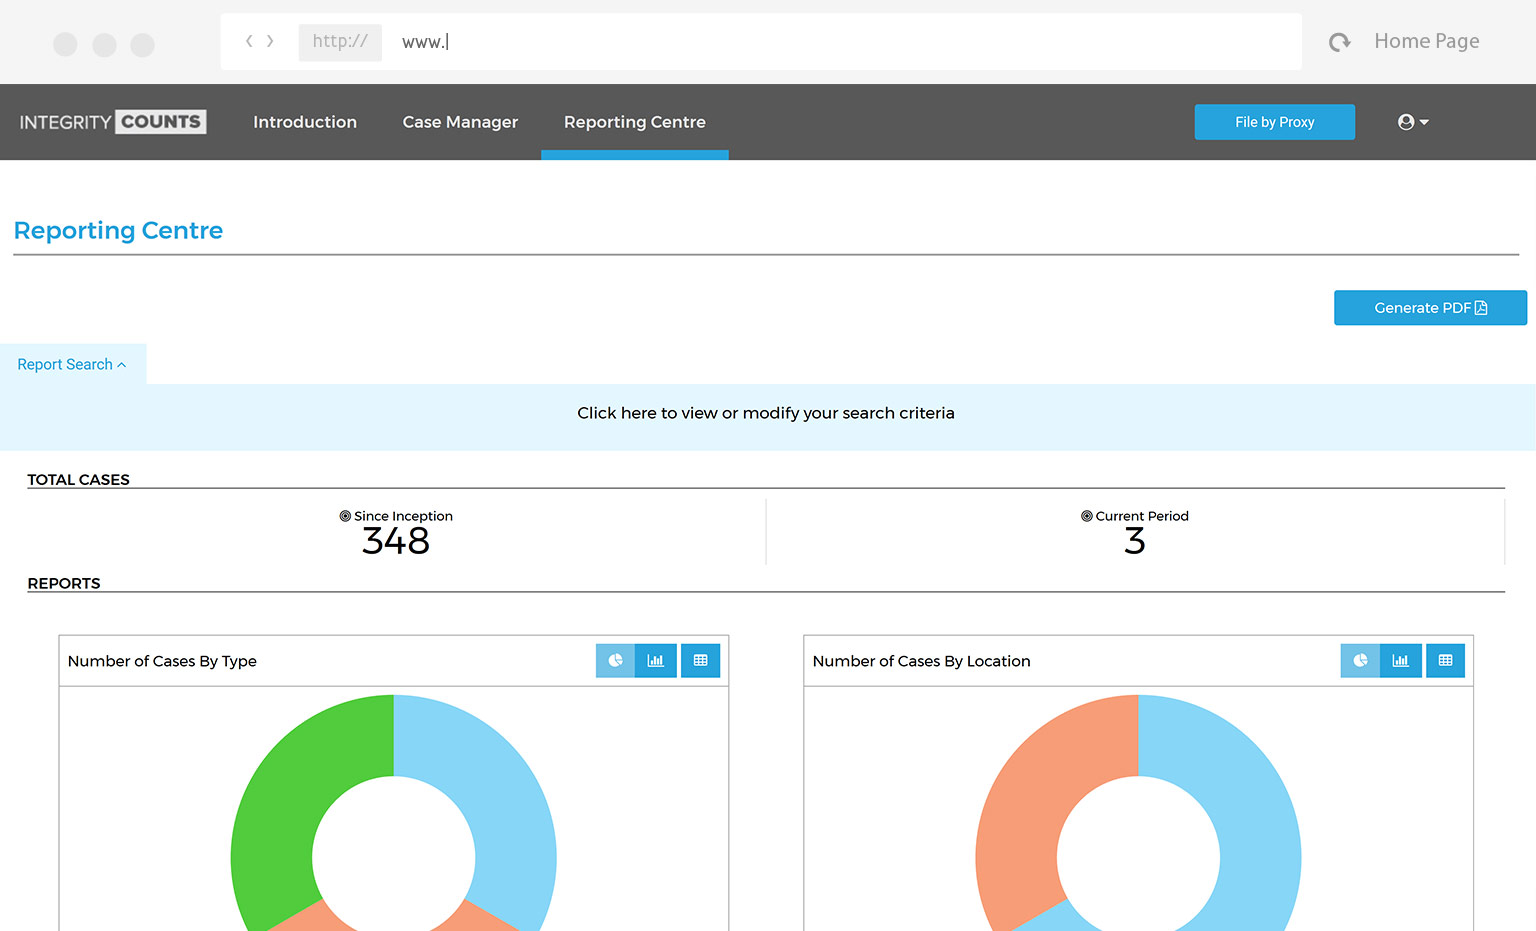 screenshot of reporting centre in integrity counts application